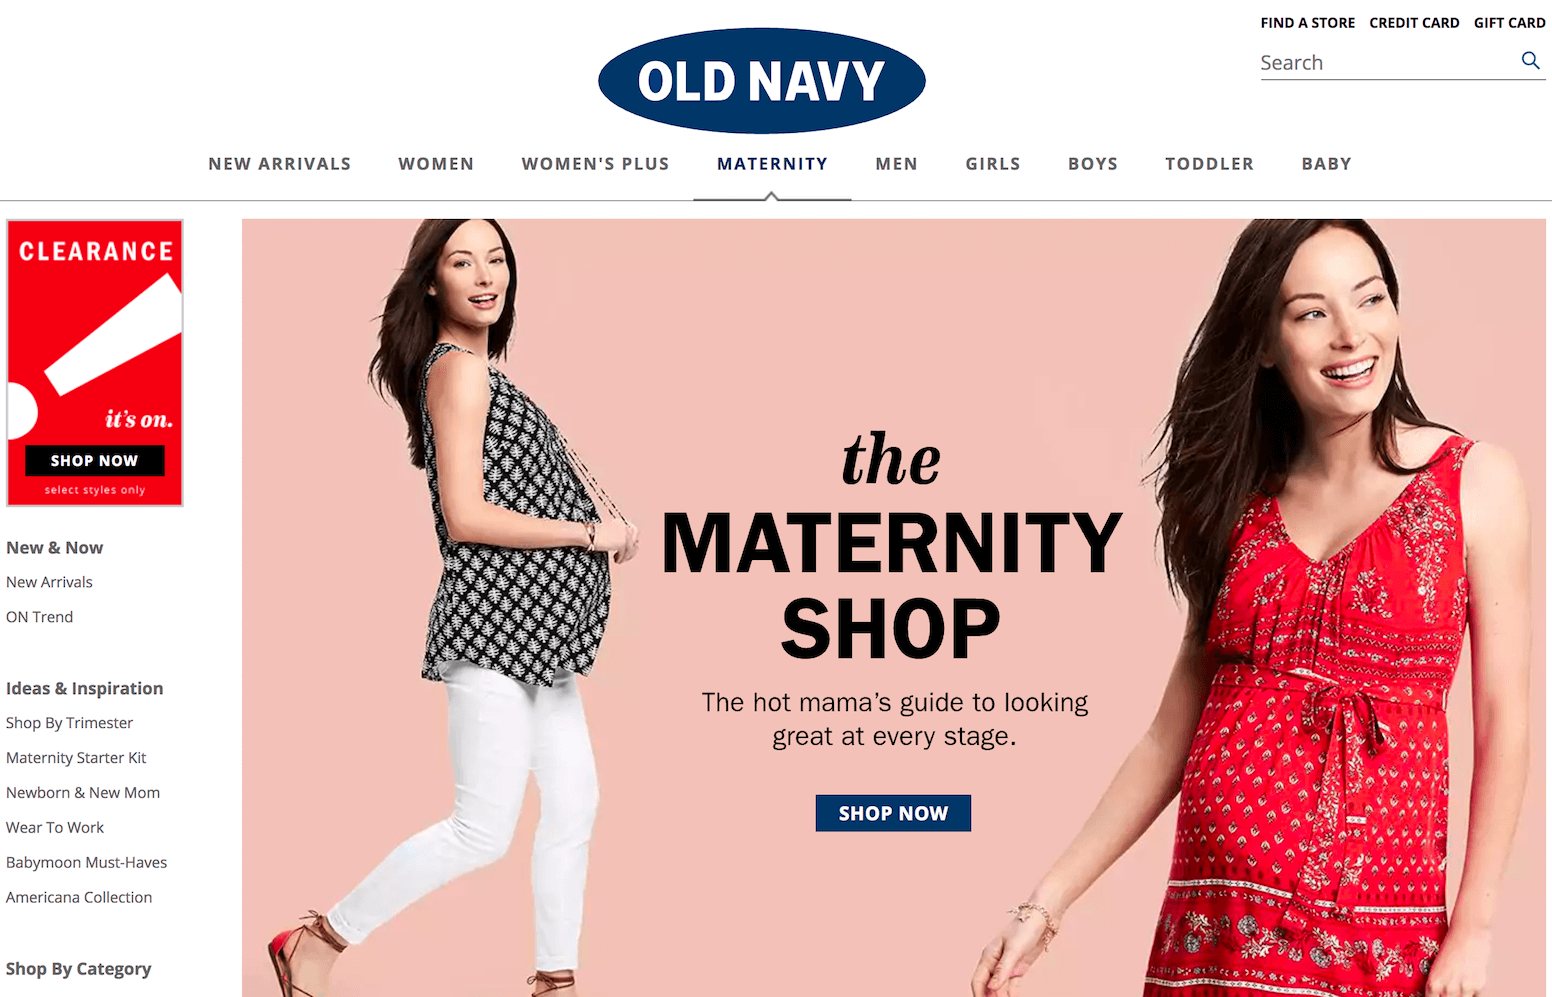 Old Navy Big Box Maternity Clothing Store